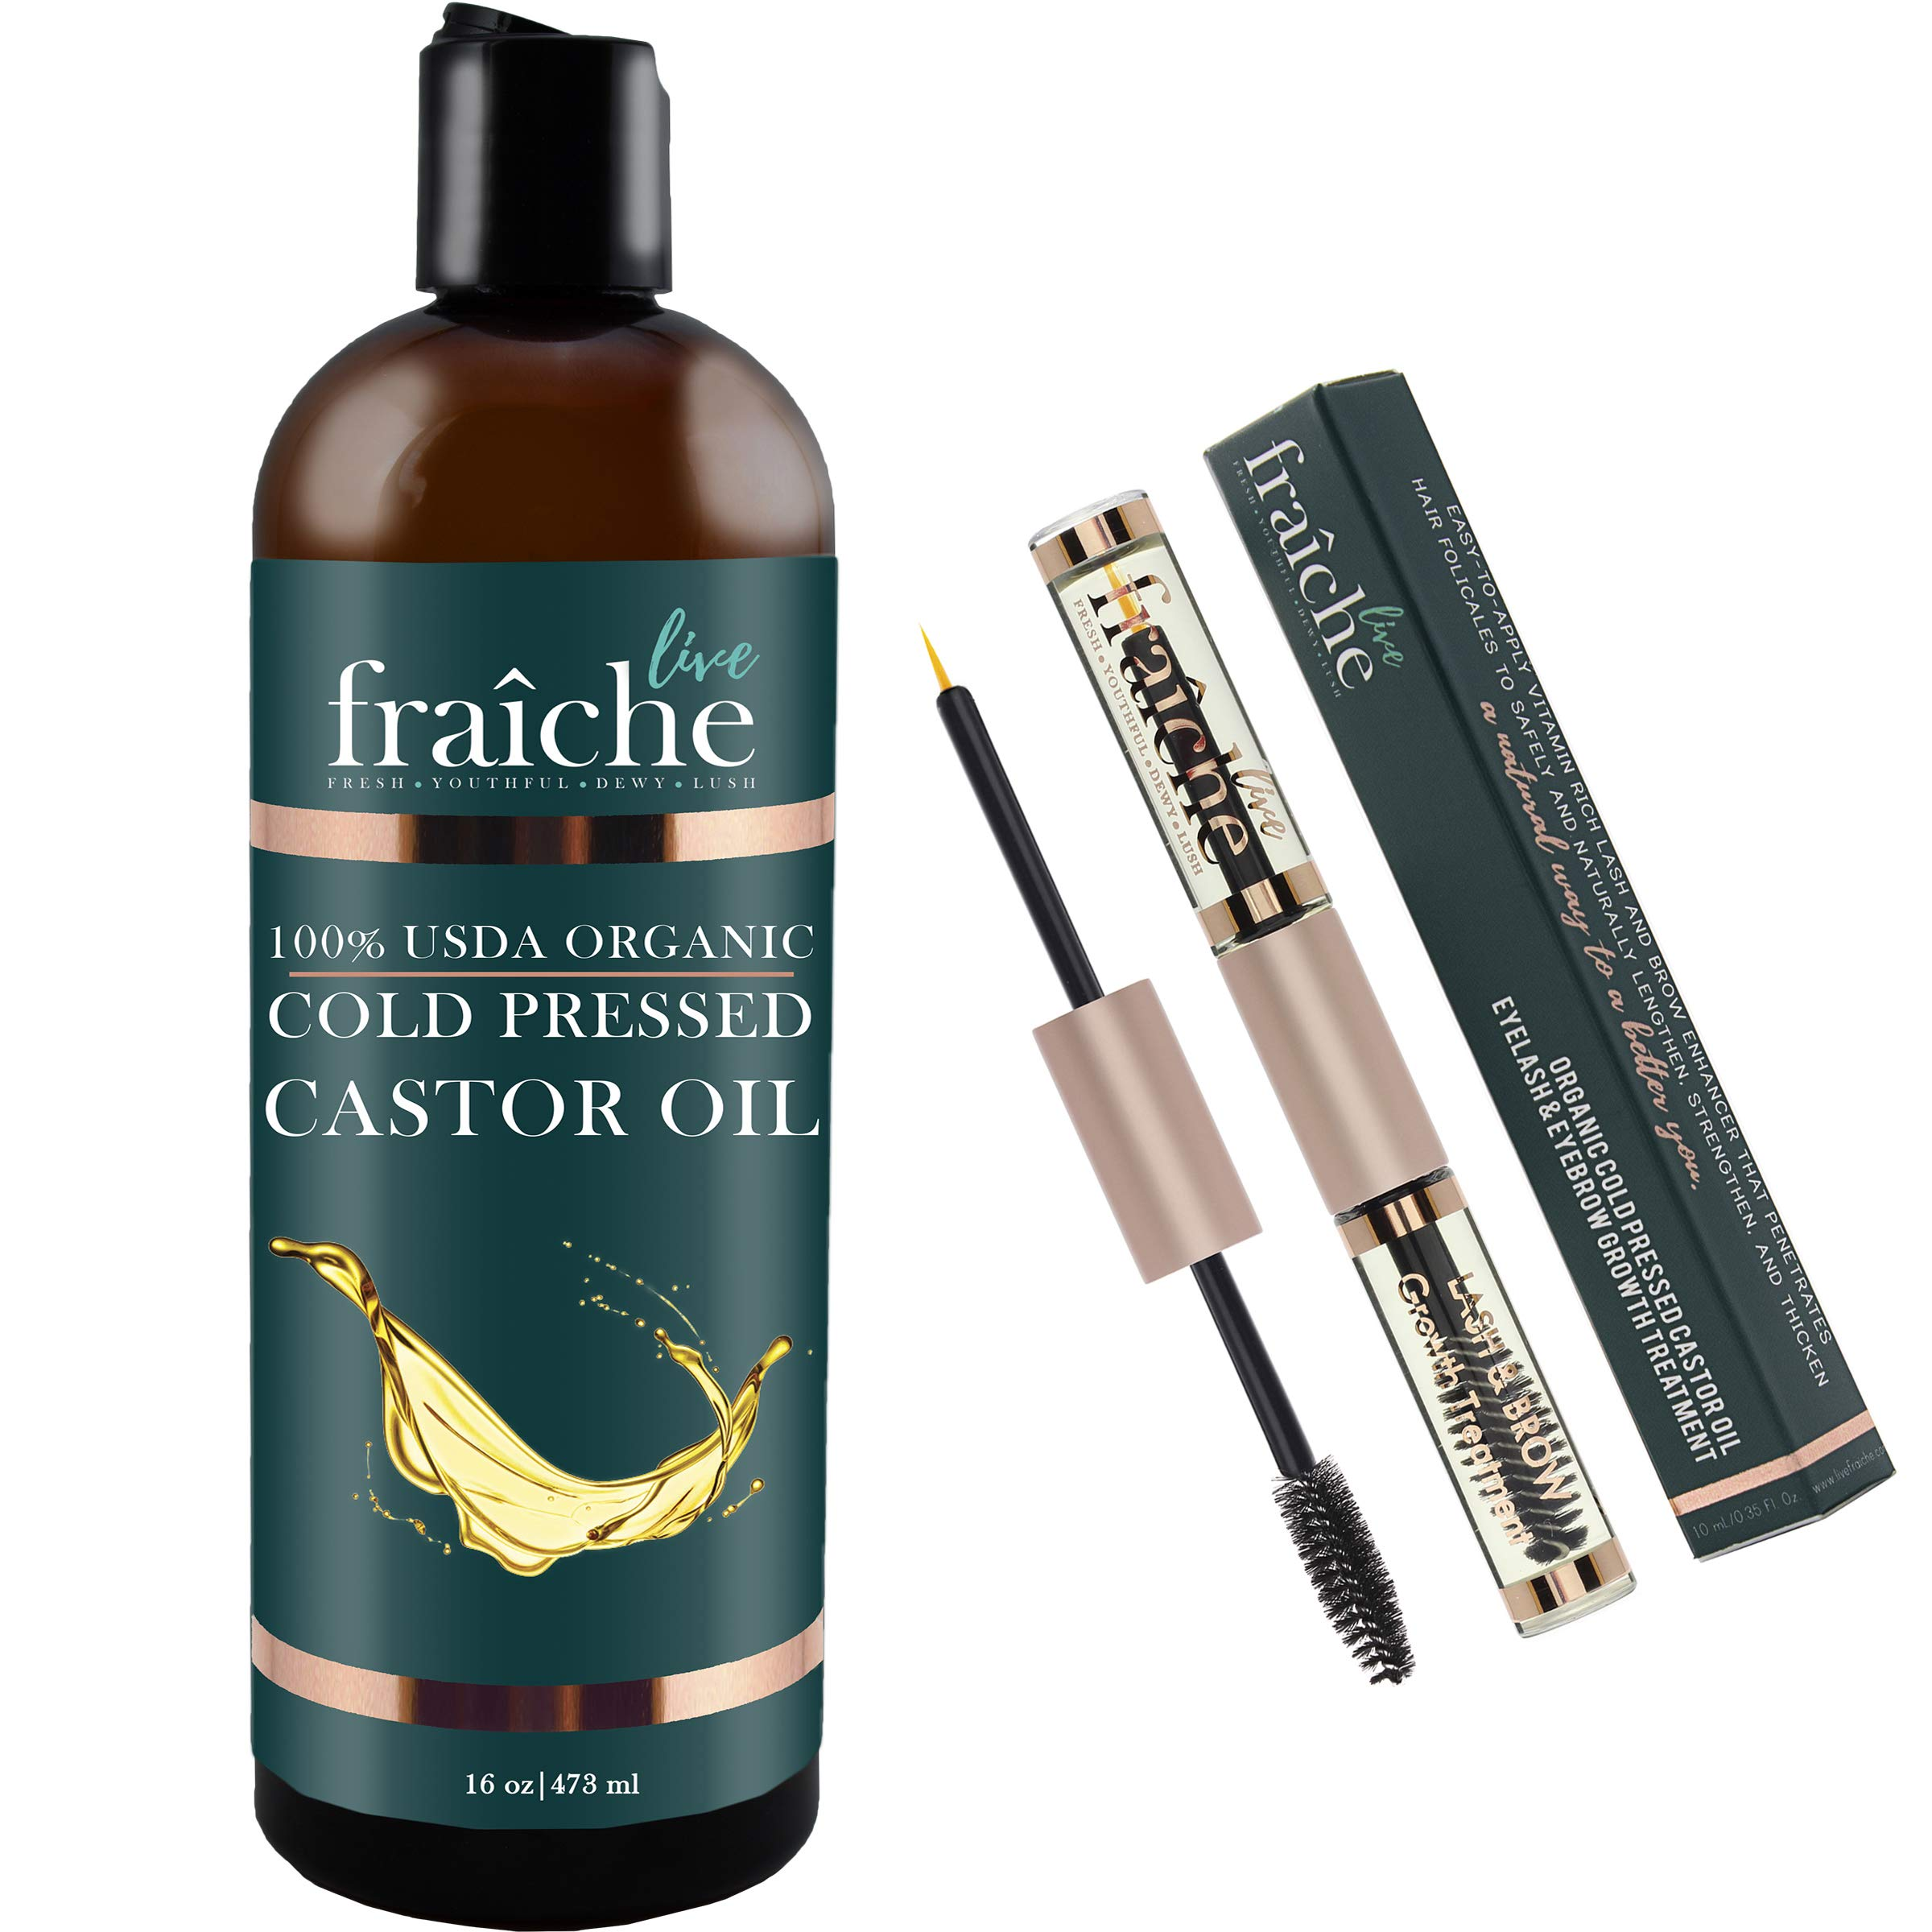 (VALUE PACK:16oz Bottle + 10ml Double Ended Eyeliner Mascara Tube) USDA Organic Castor Oil for Eyelashes and Eyebrows Hair Growth, Dry Skin - Cold Pressed Caster Oil Hair Growth Scalp Deep Conditioner